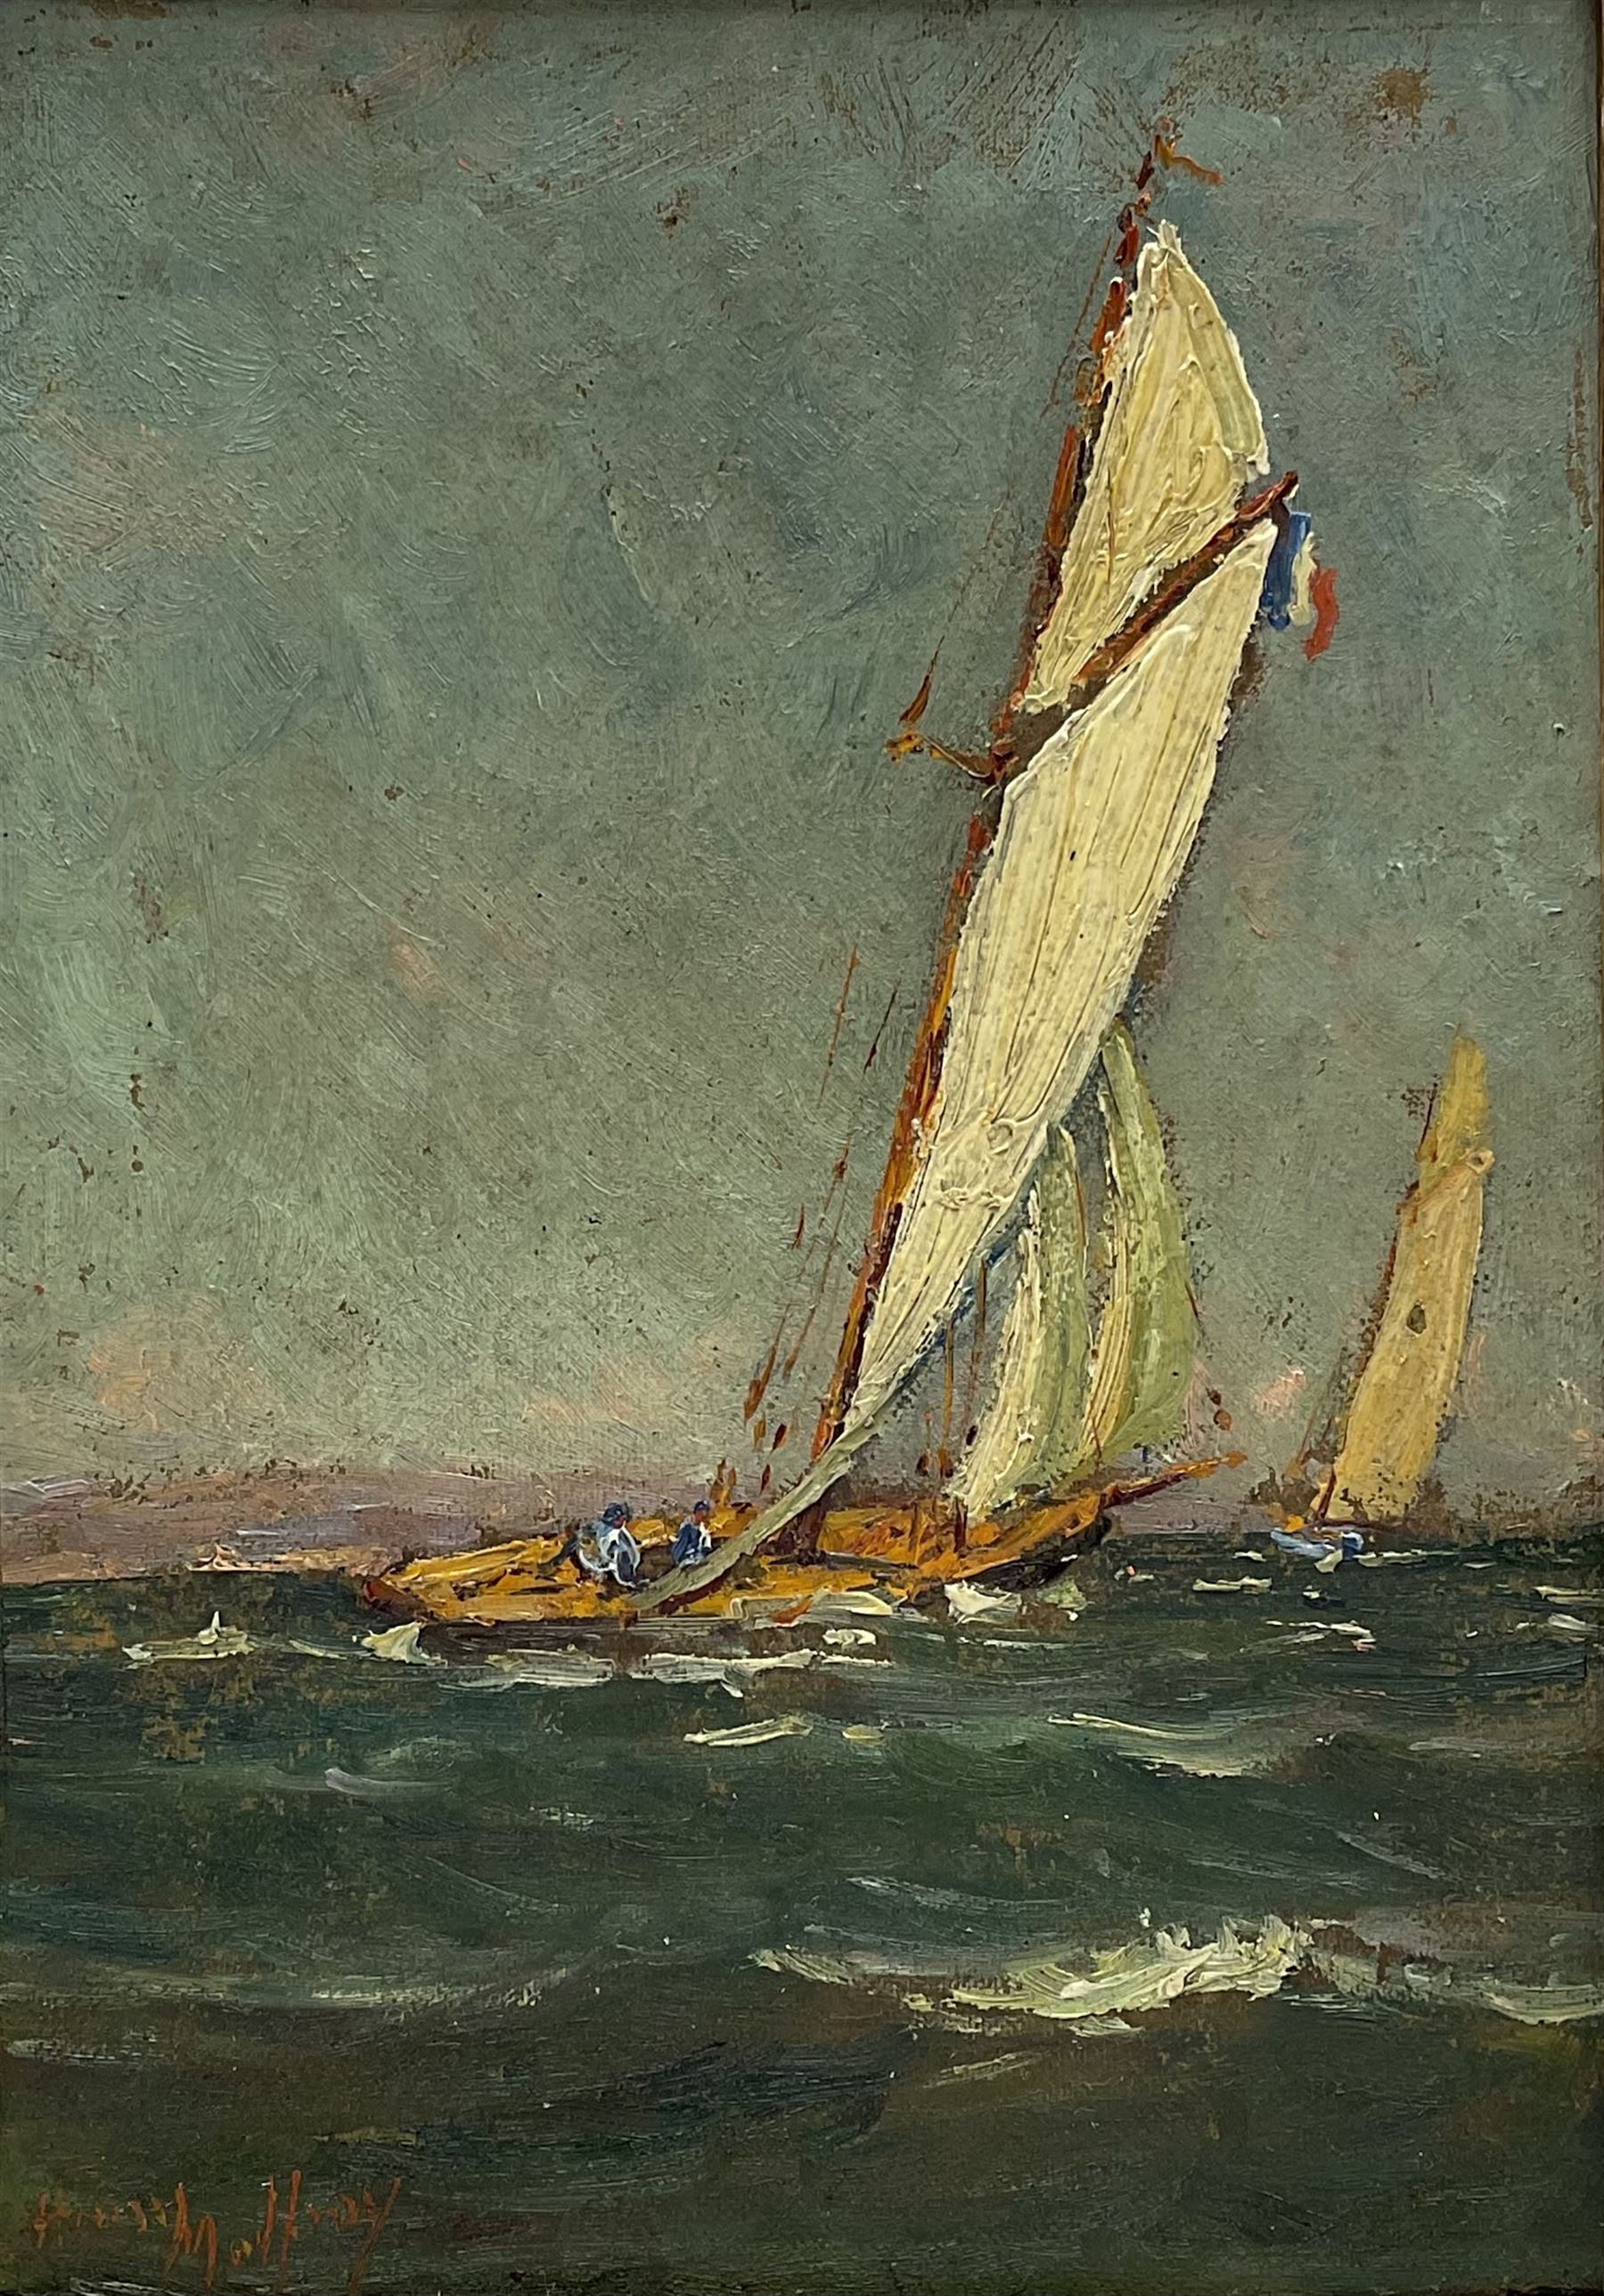 Henry Malfroy (French 1895-1944): Racing Yachts